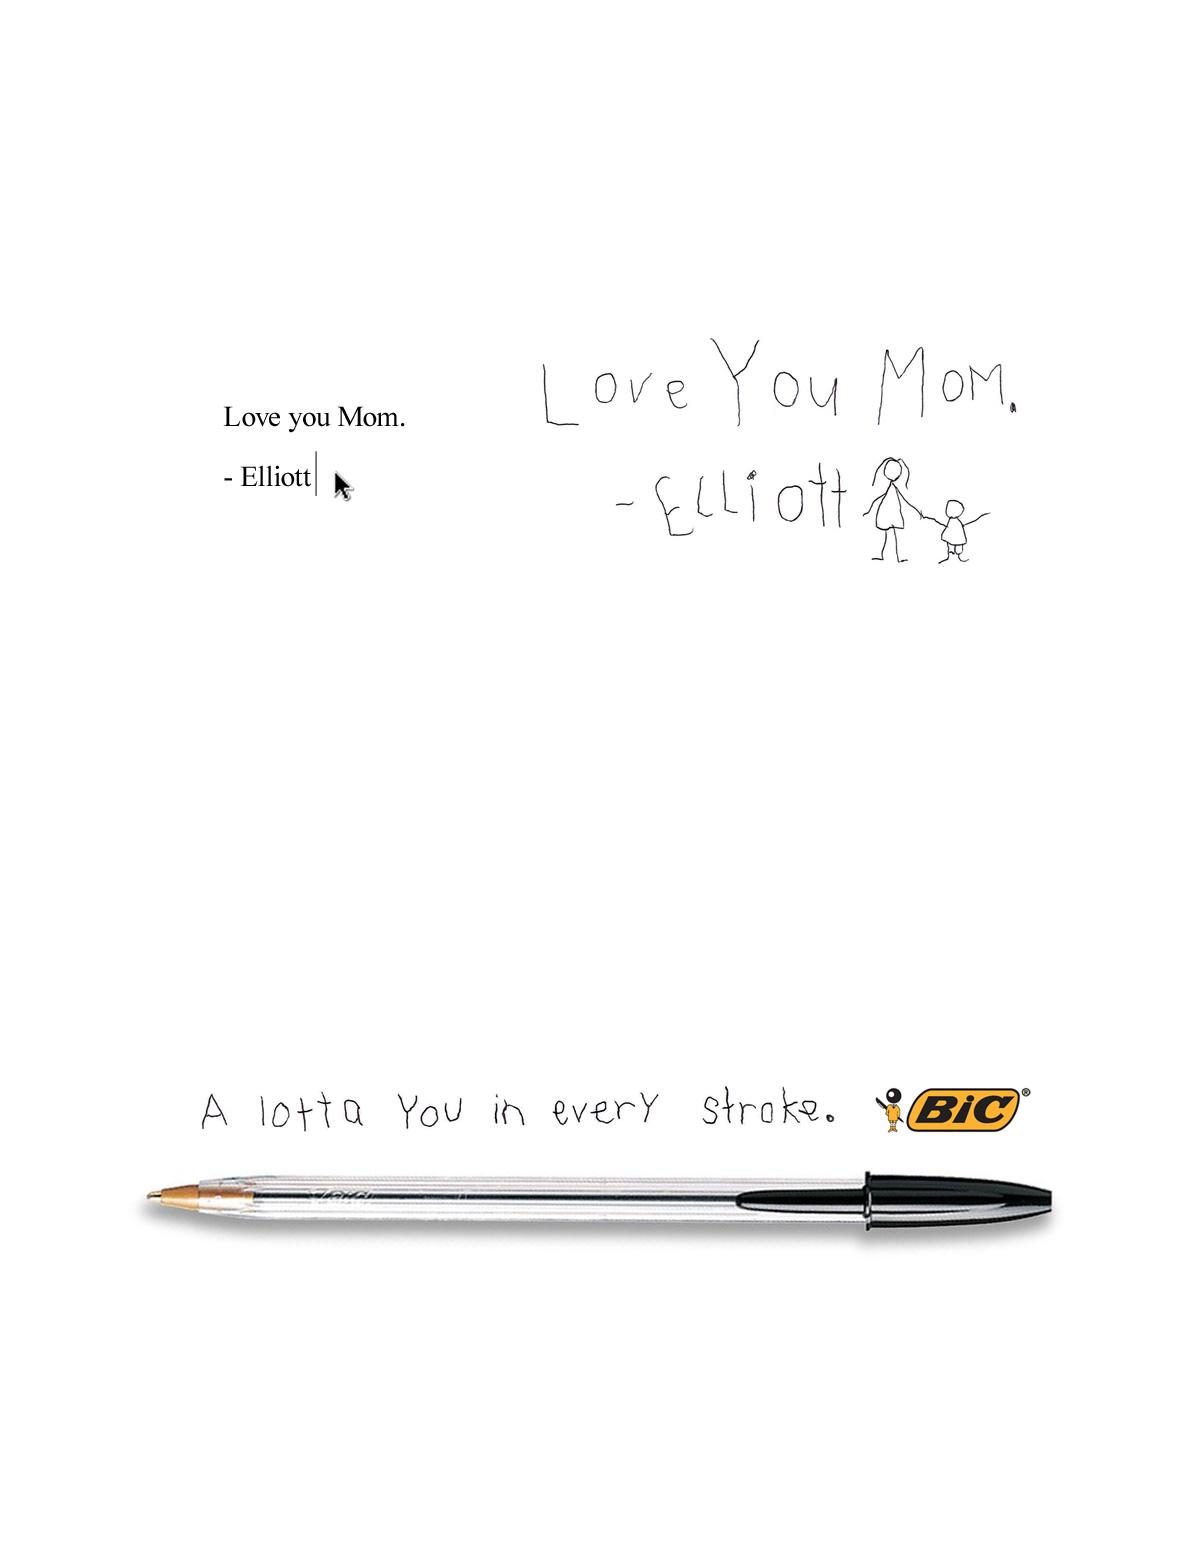 BIC Print Ad -  Love you Mom. - Elliott